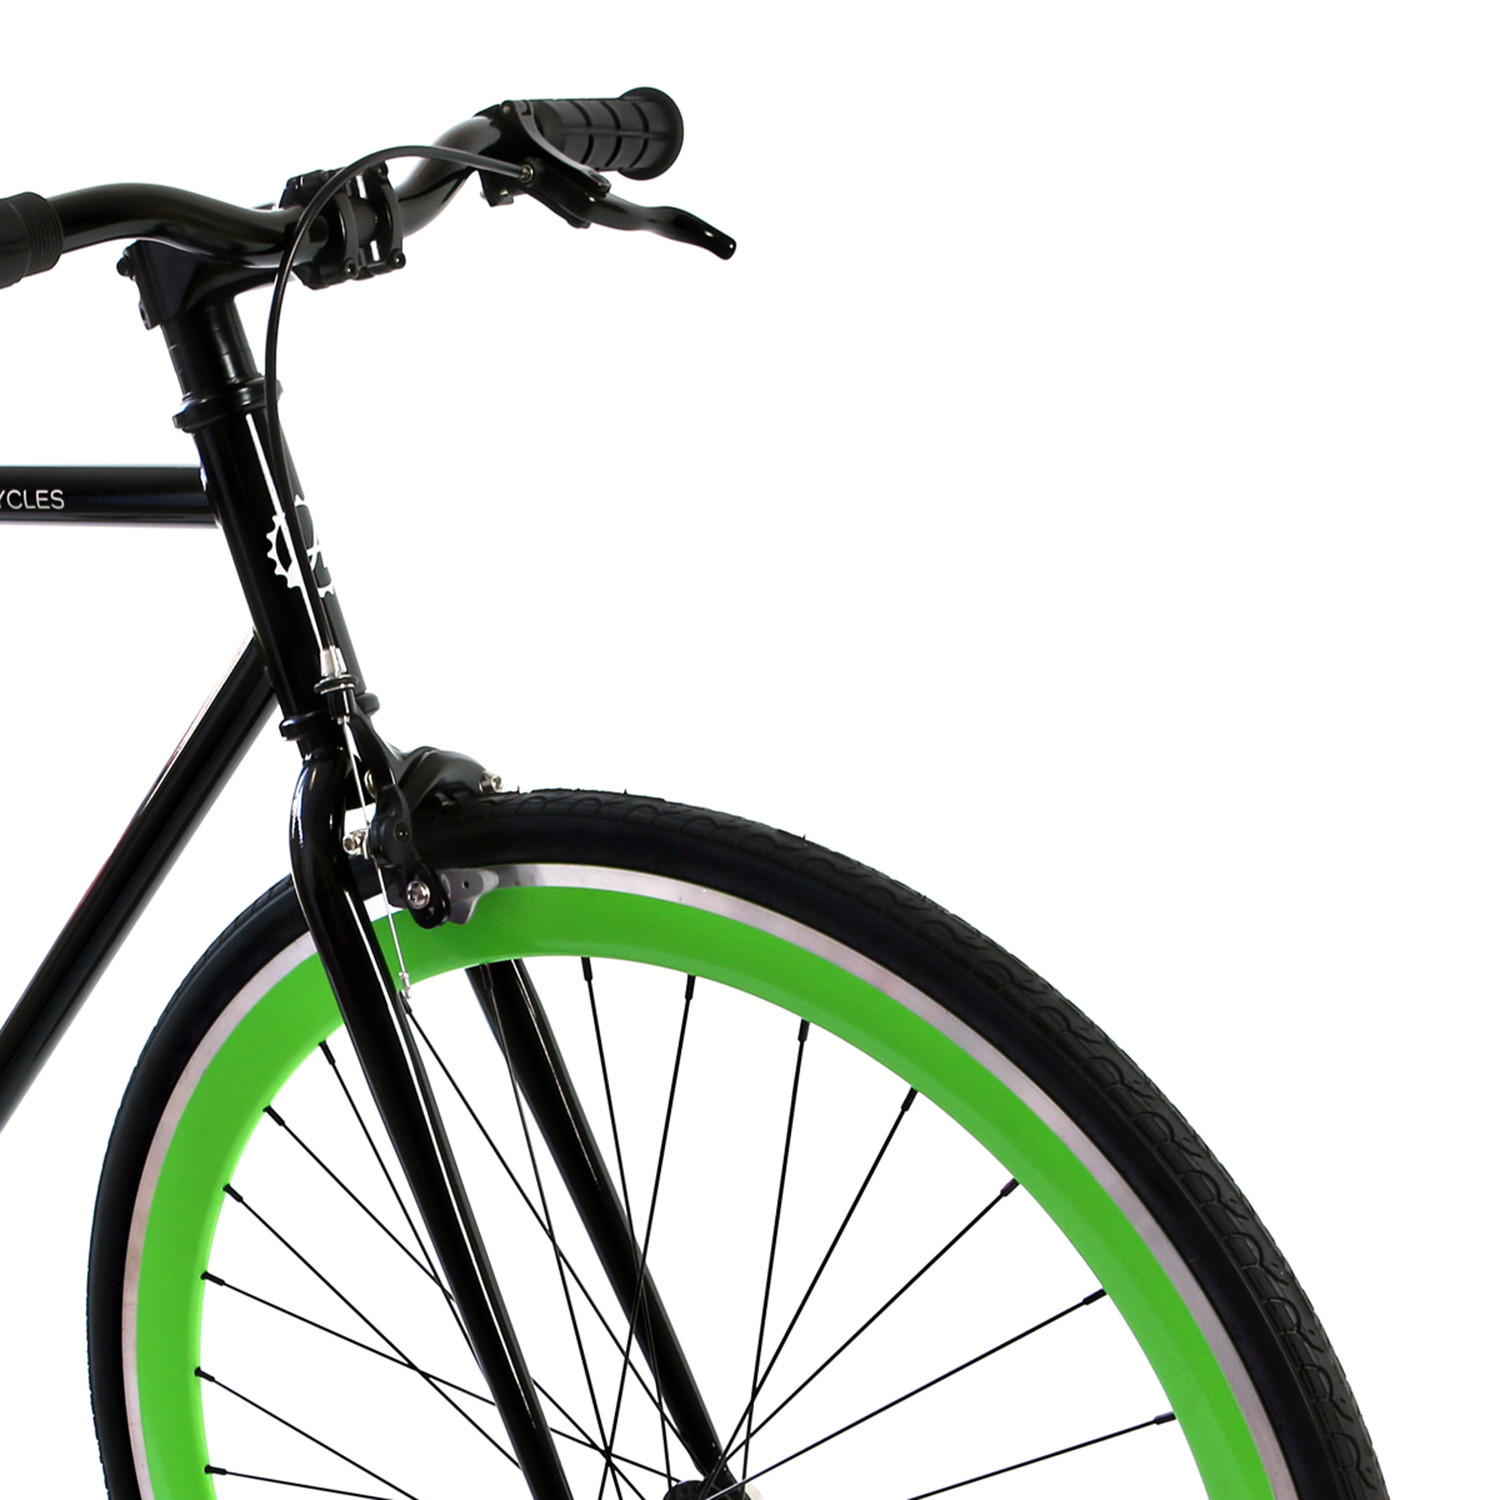 black singles in greens fork Springer forks for 26 cruisers and 20 lowrider bikes bent and straight versions with finishes in chrome or gold or black or raw metal for custom painting.